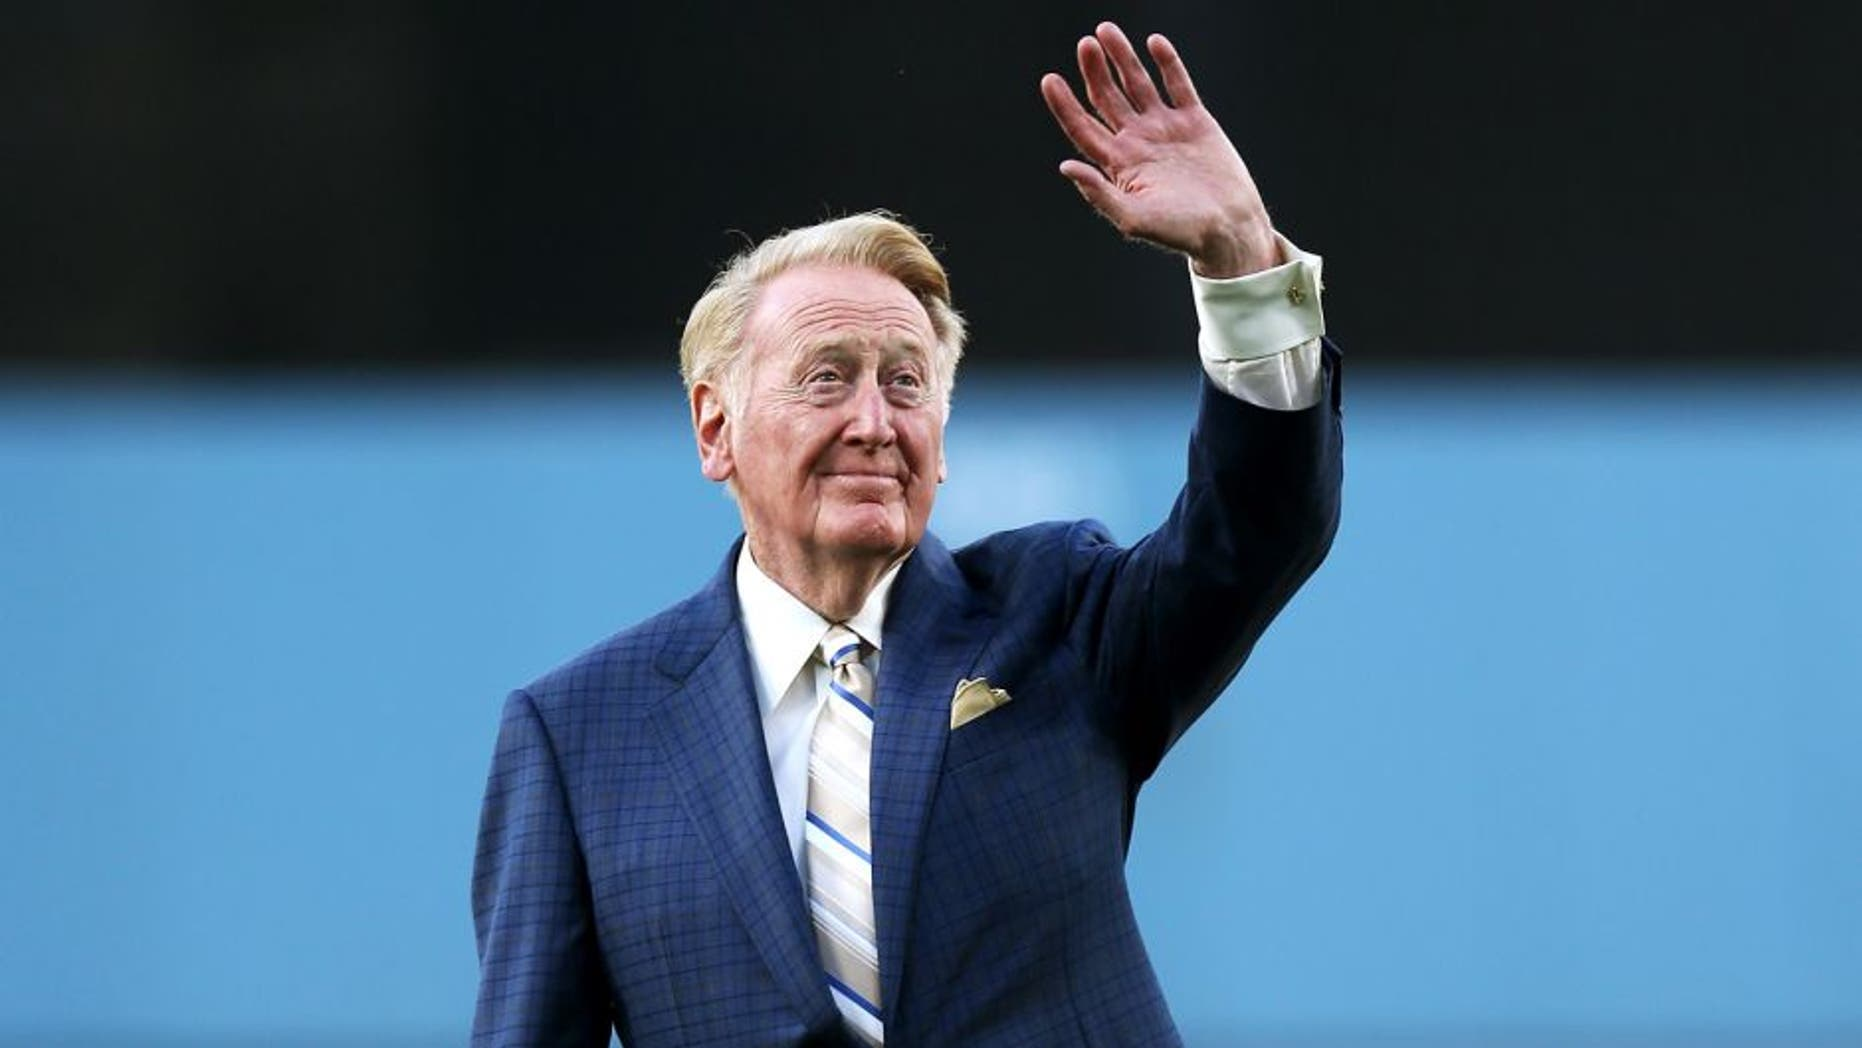 LOS ANGELES, CA - AUGUST 30: Dodger broadcaster Vin Scully waves to the crowd before throwing out the first pitch during ceeremoniew honoring him on his 64 years of sevice before the game between the Arizona Diamondbacks and the Los Angeles Dodgers on August 30, 2012 at Dodger Stadium in Los Angeles, California. (Photo by Stephen Dunn/Getty Images)